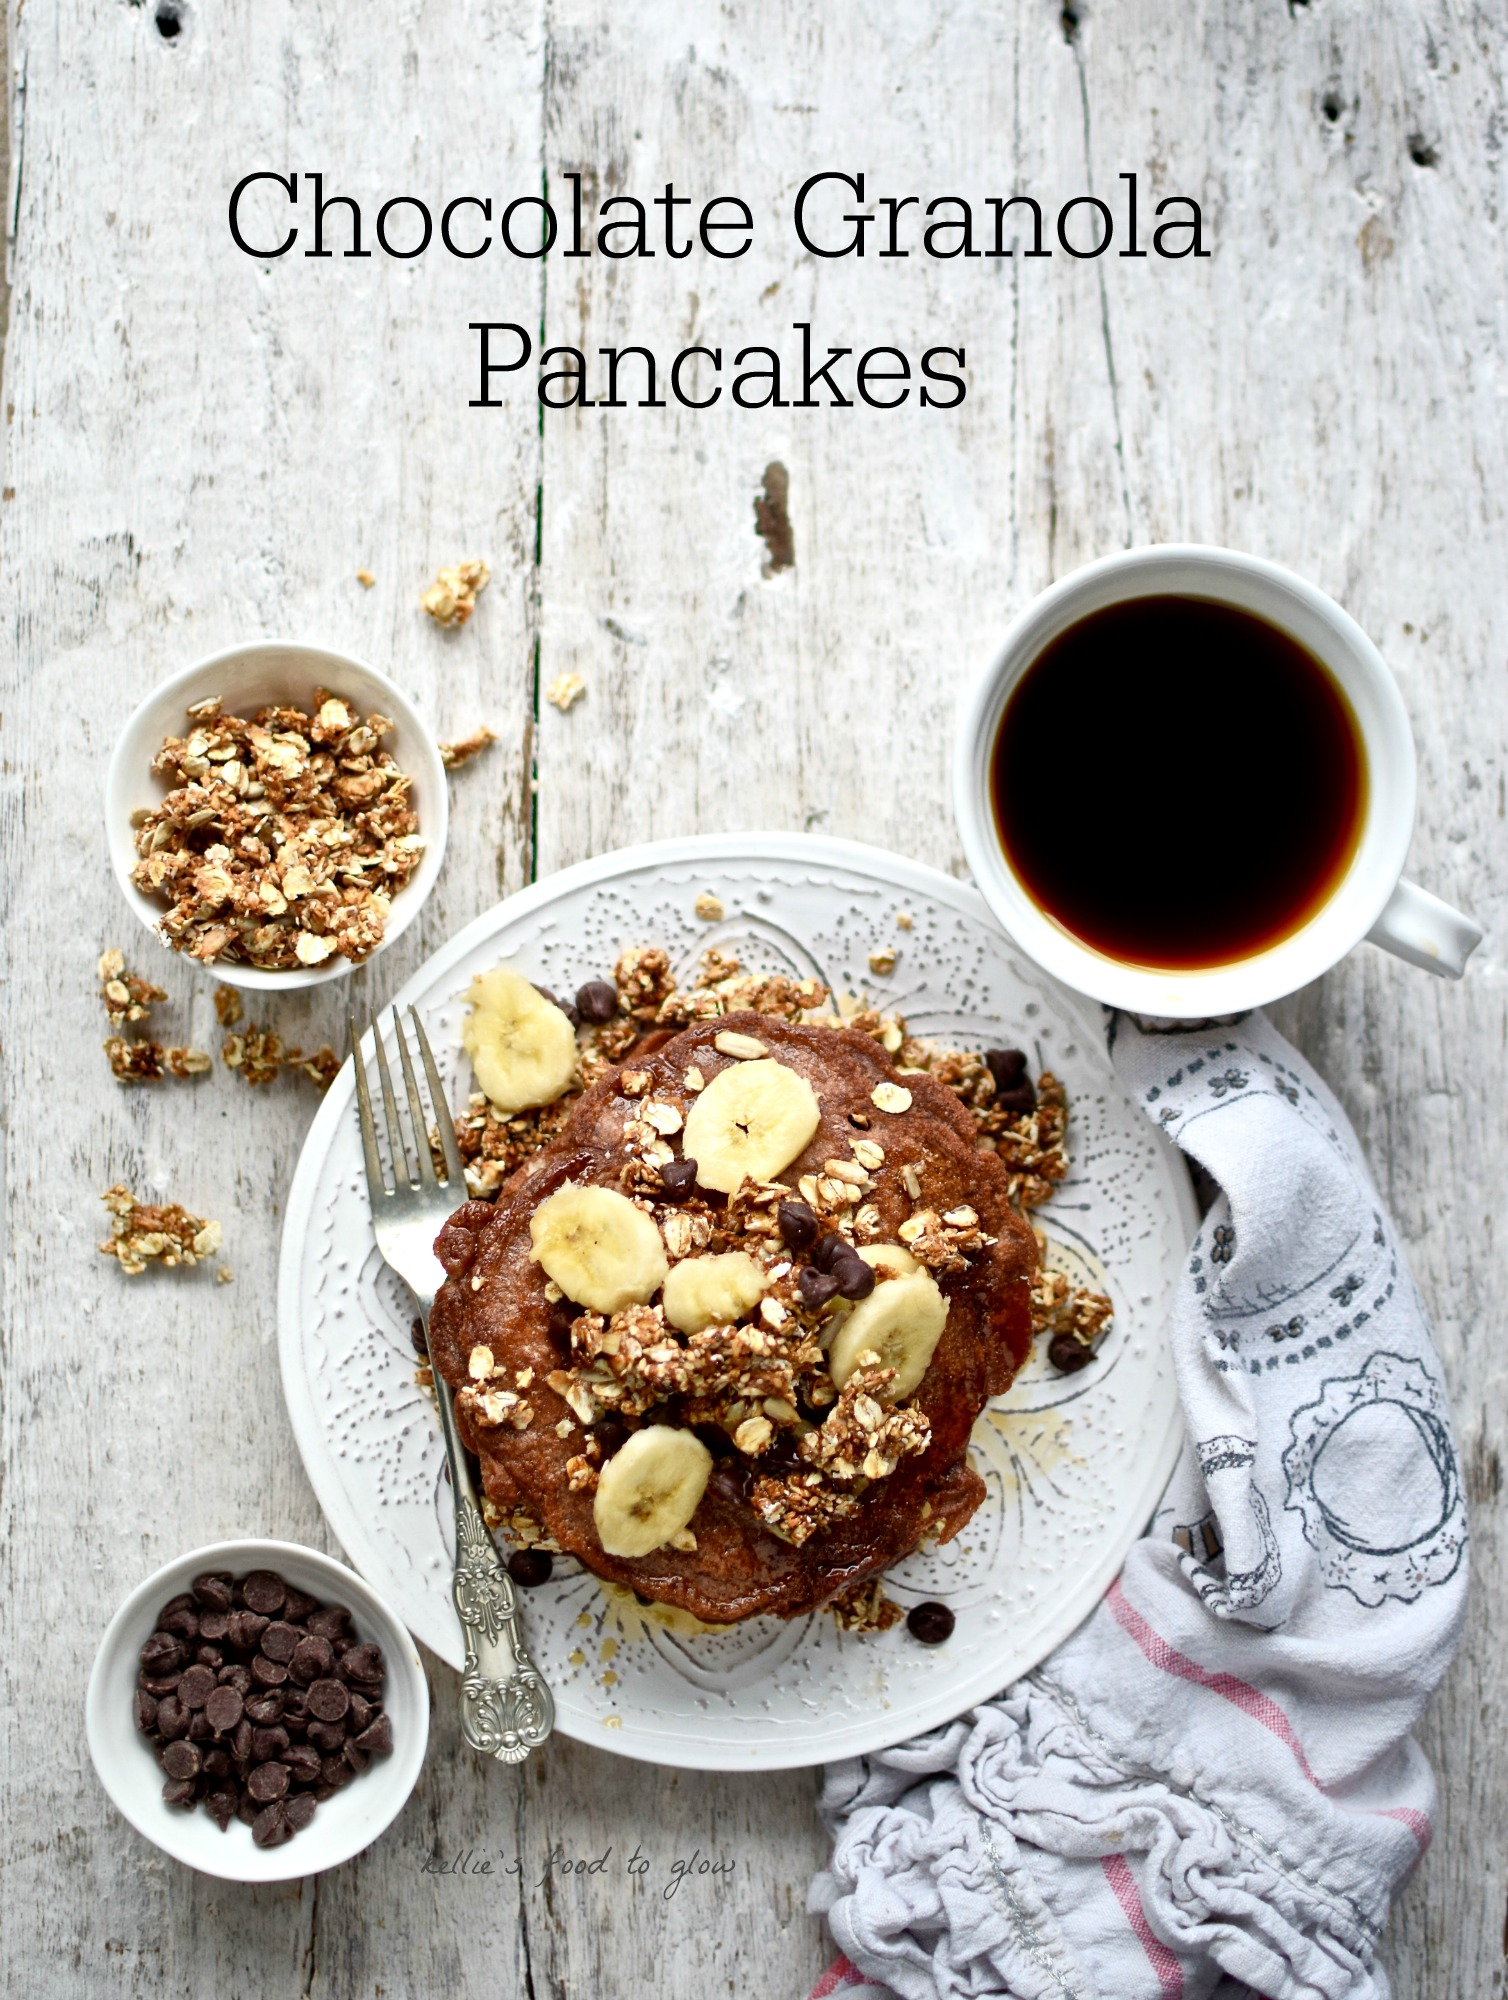 Easy, decadent and perfect for dessert, these Chocolate Granola Pancakes are a Pancake Day (Shrove Tuesday), or any day, treat. Easily adapted for gluten-free and dairy-free.